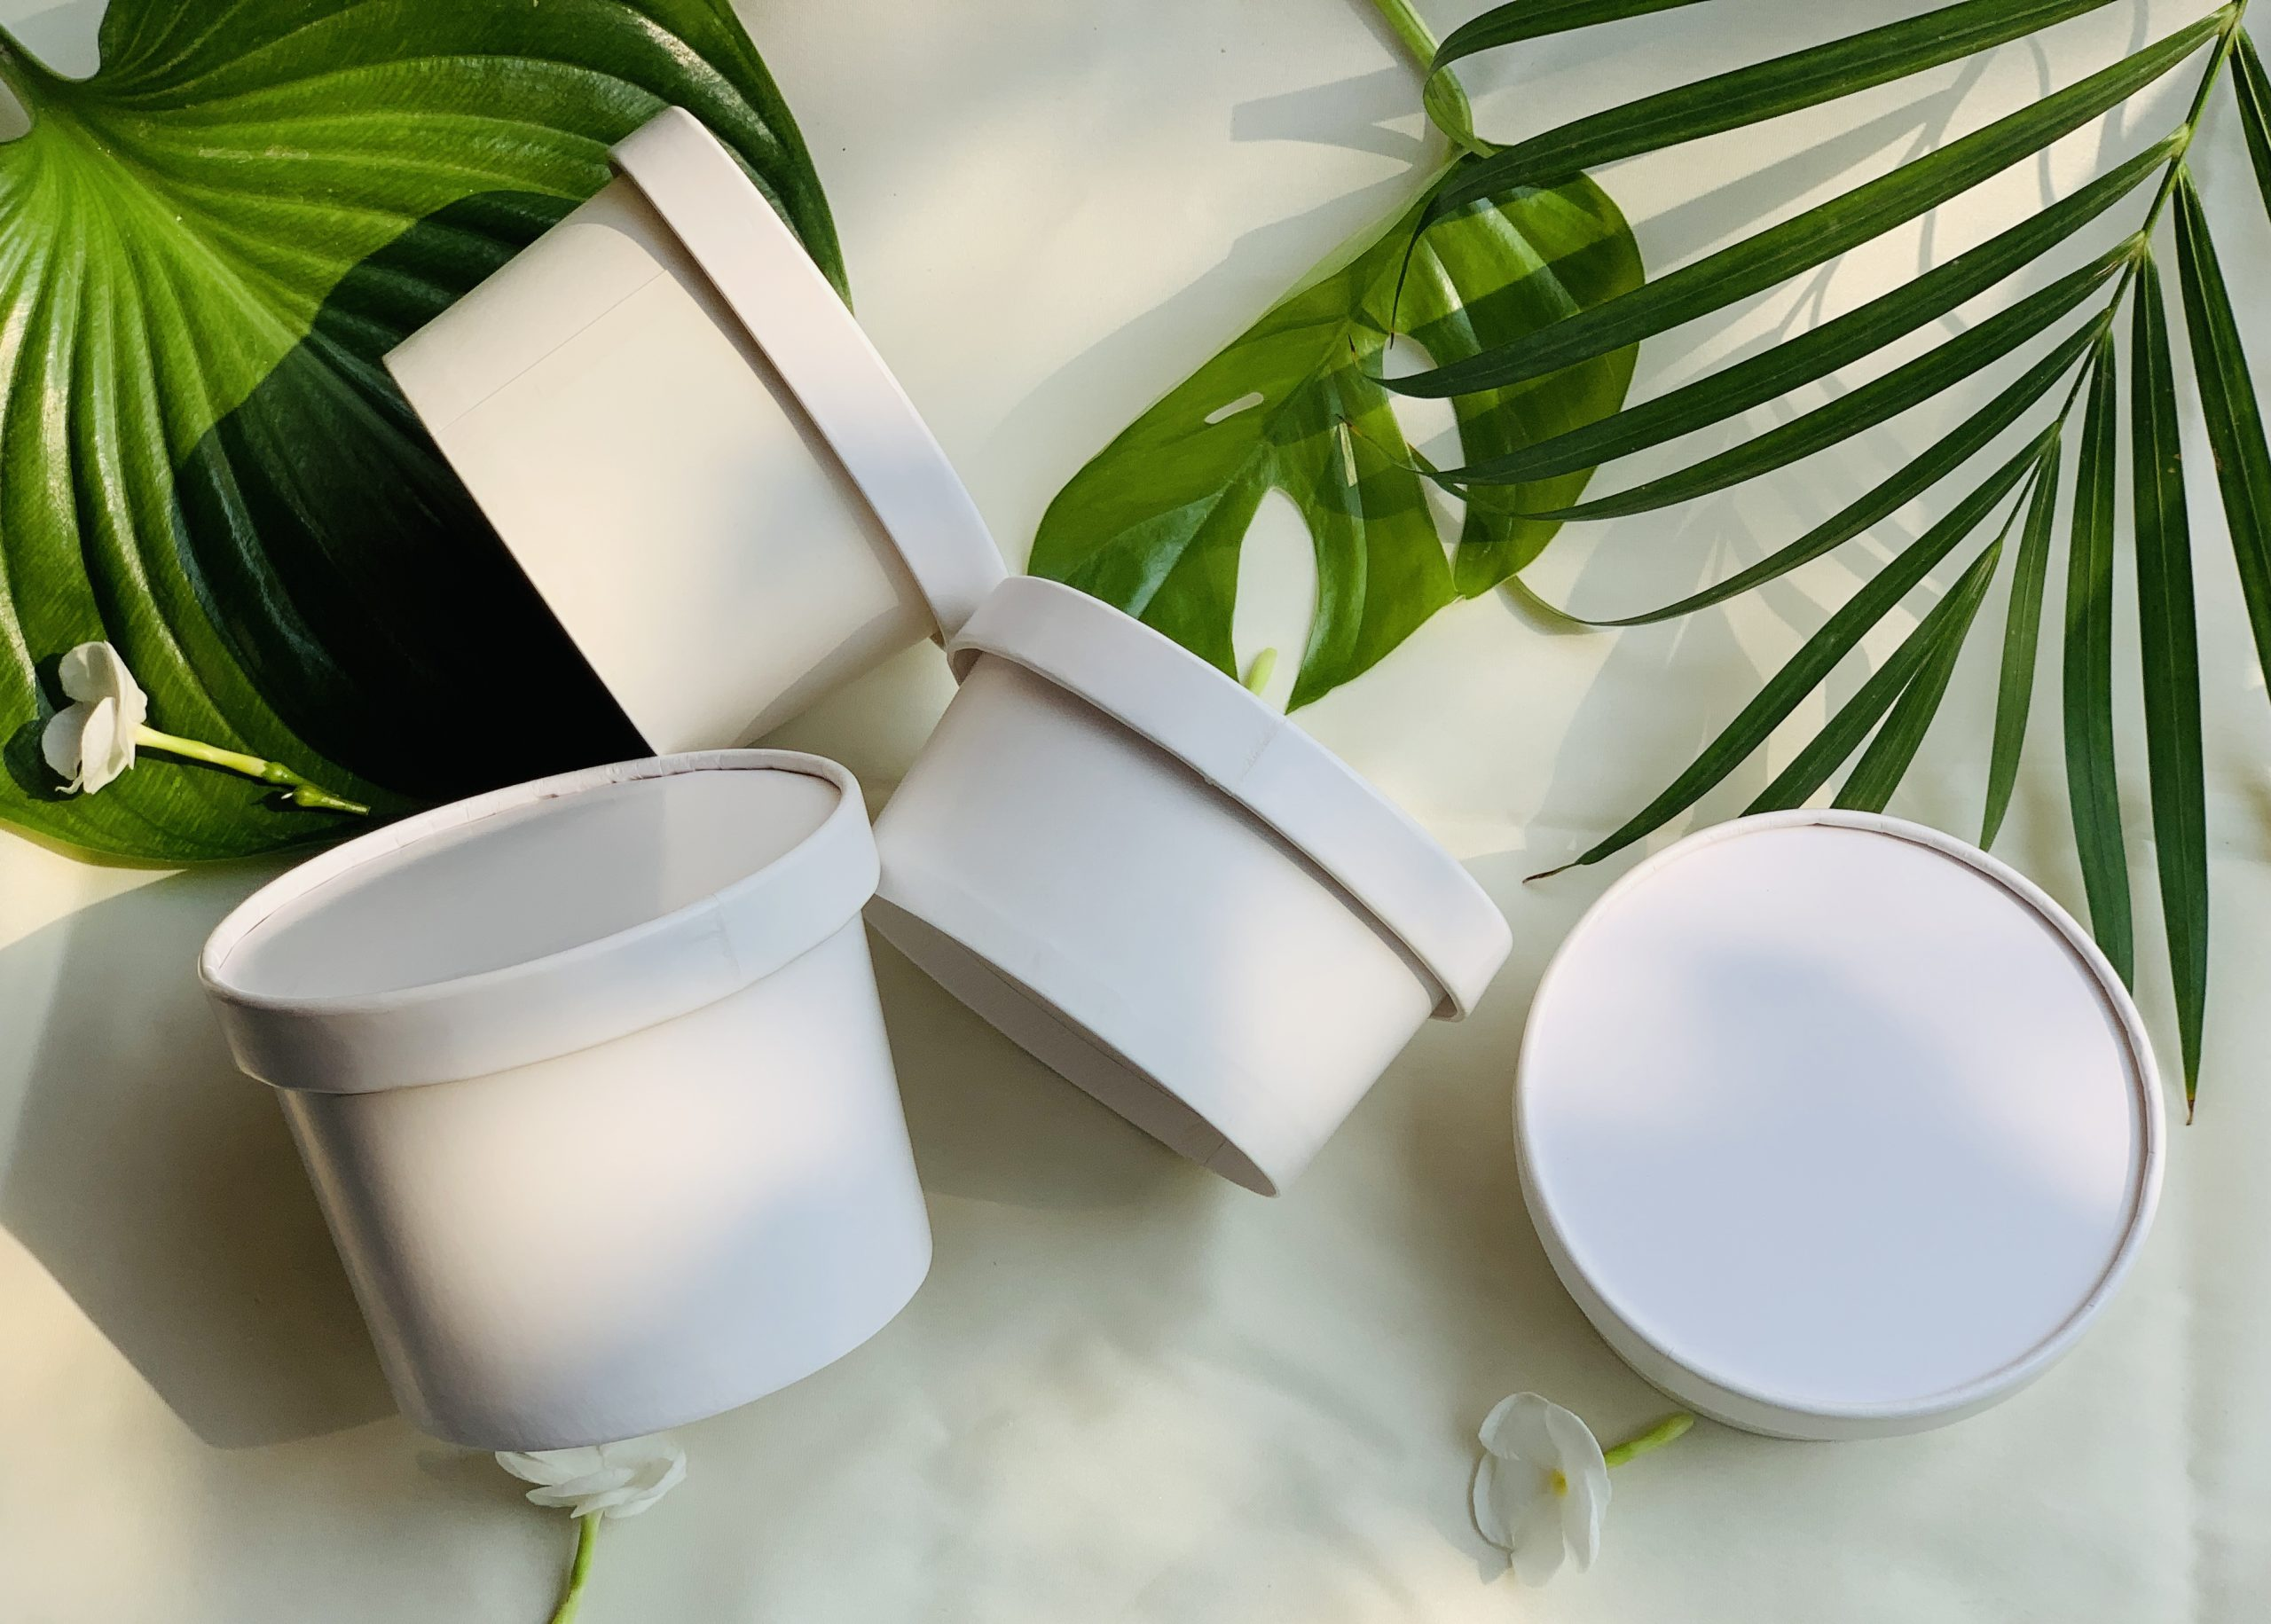 disposable food containers - Aecoz